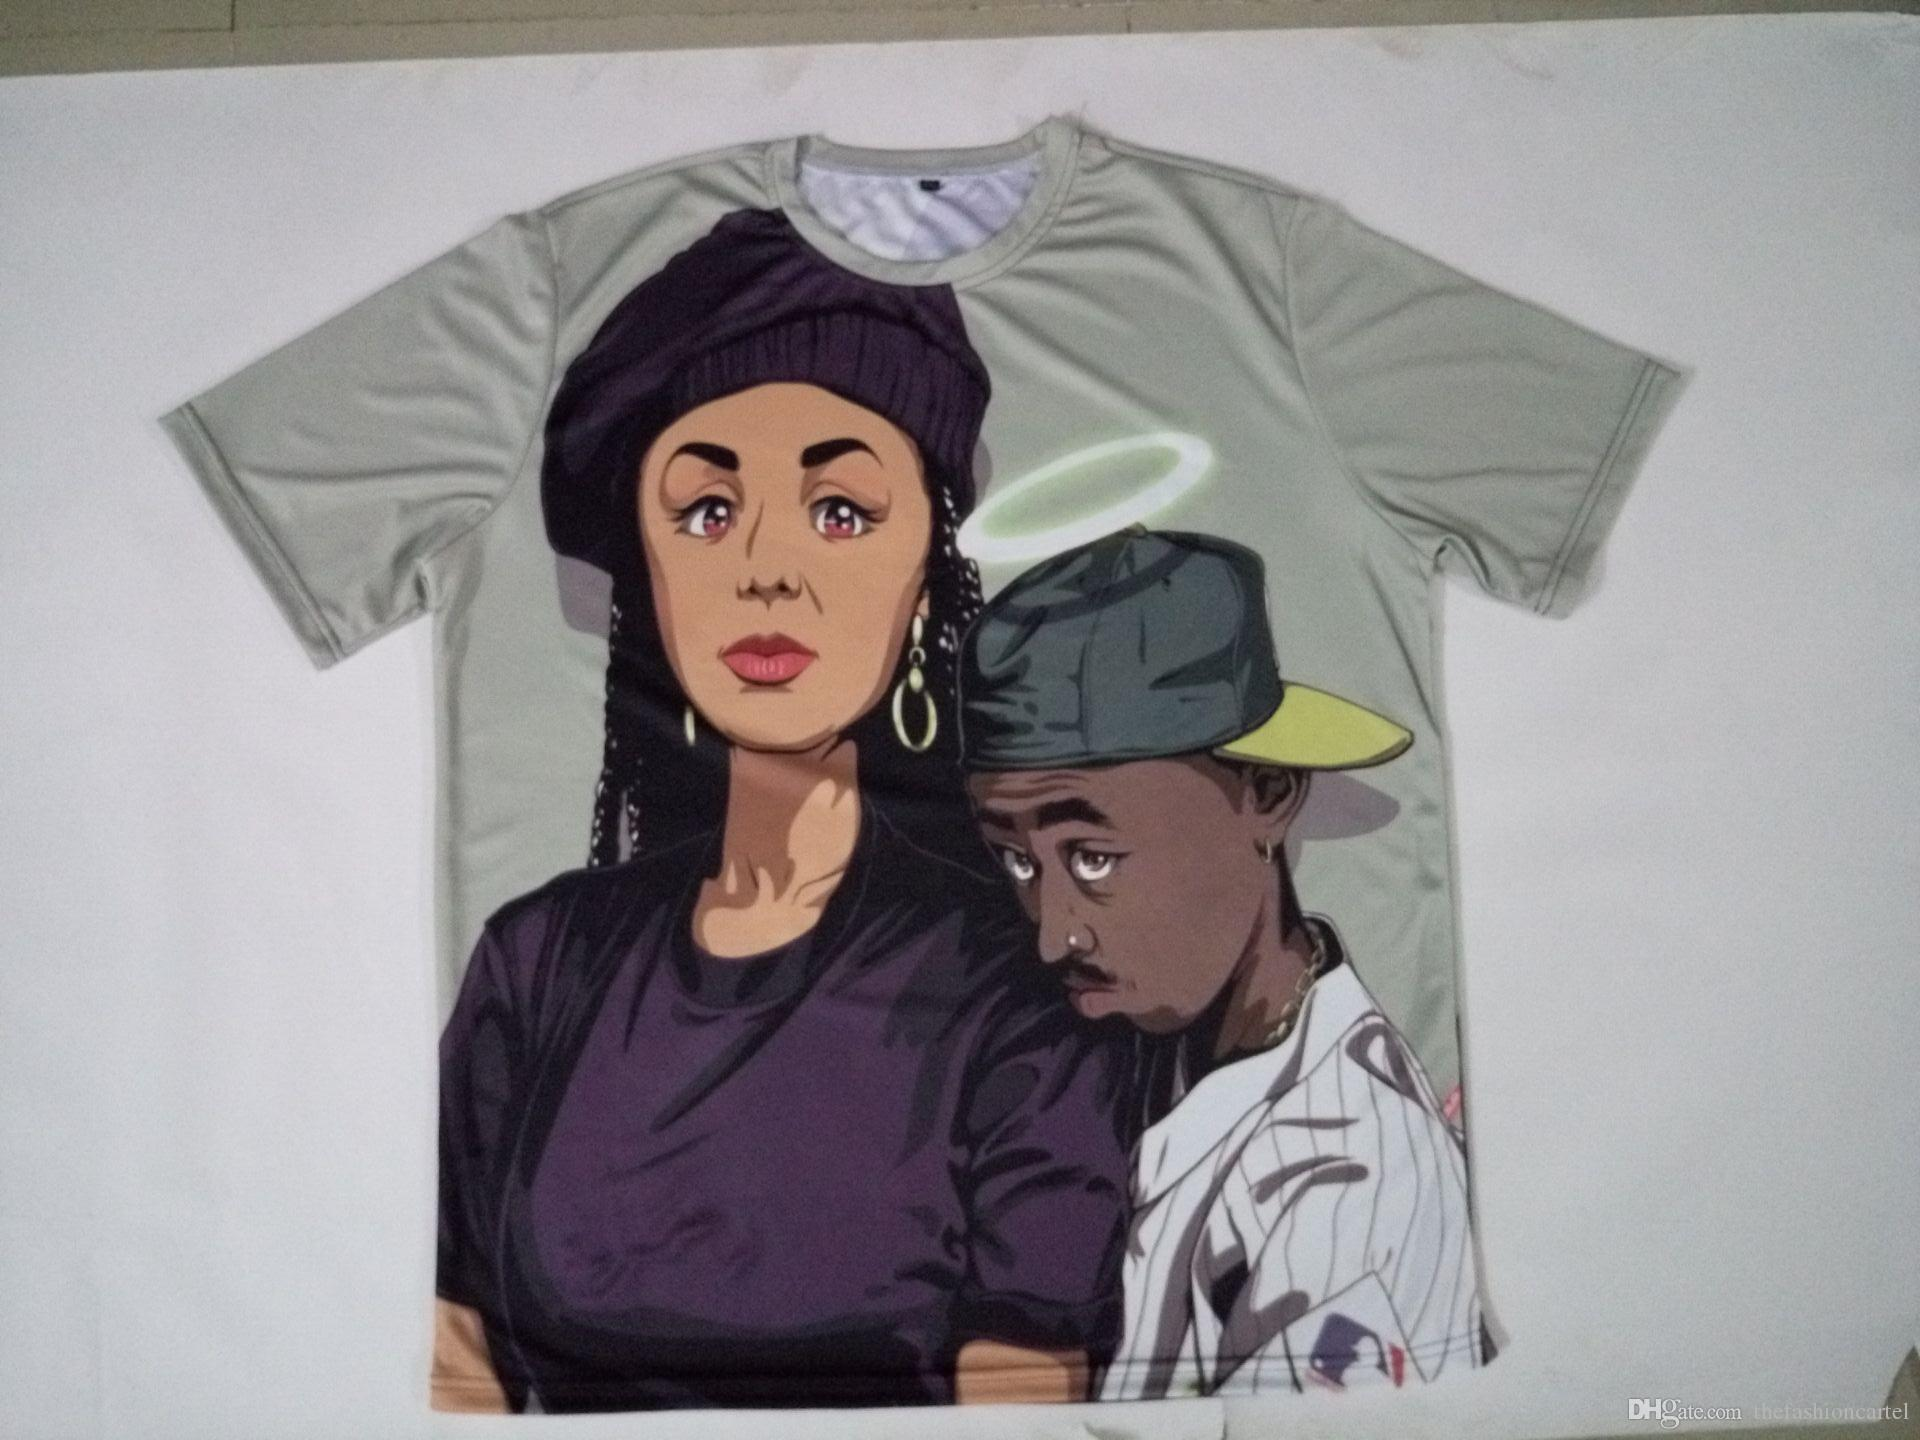 7d68c64f7cc Real USA Size Custom Made Poetic Justice Tupac X Janet Jackson 3D  Sublimation Print T Shirt Unisex Clothing Humorous Shirts Buy Tee Shirts  From ...